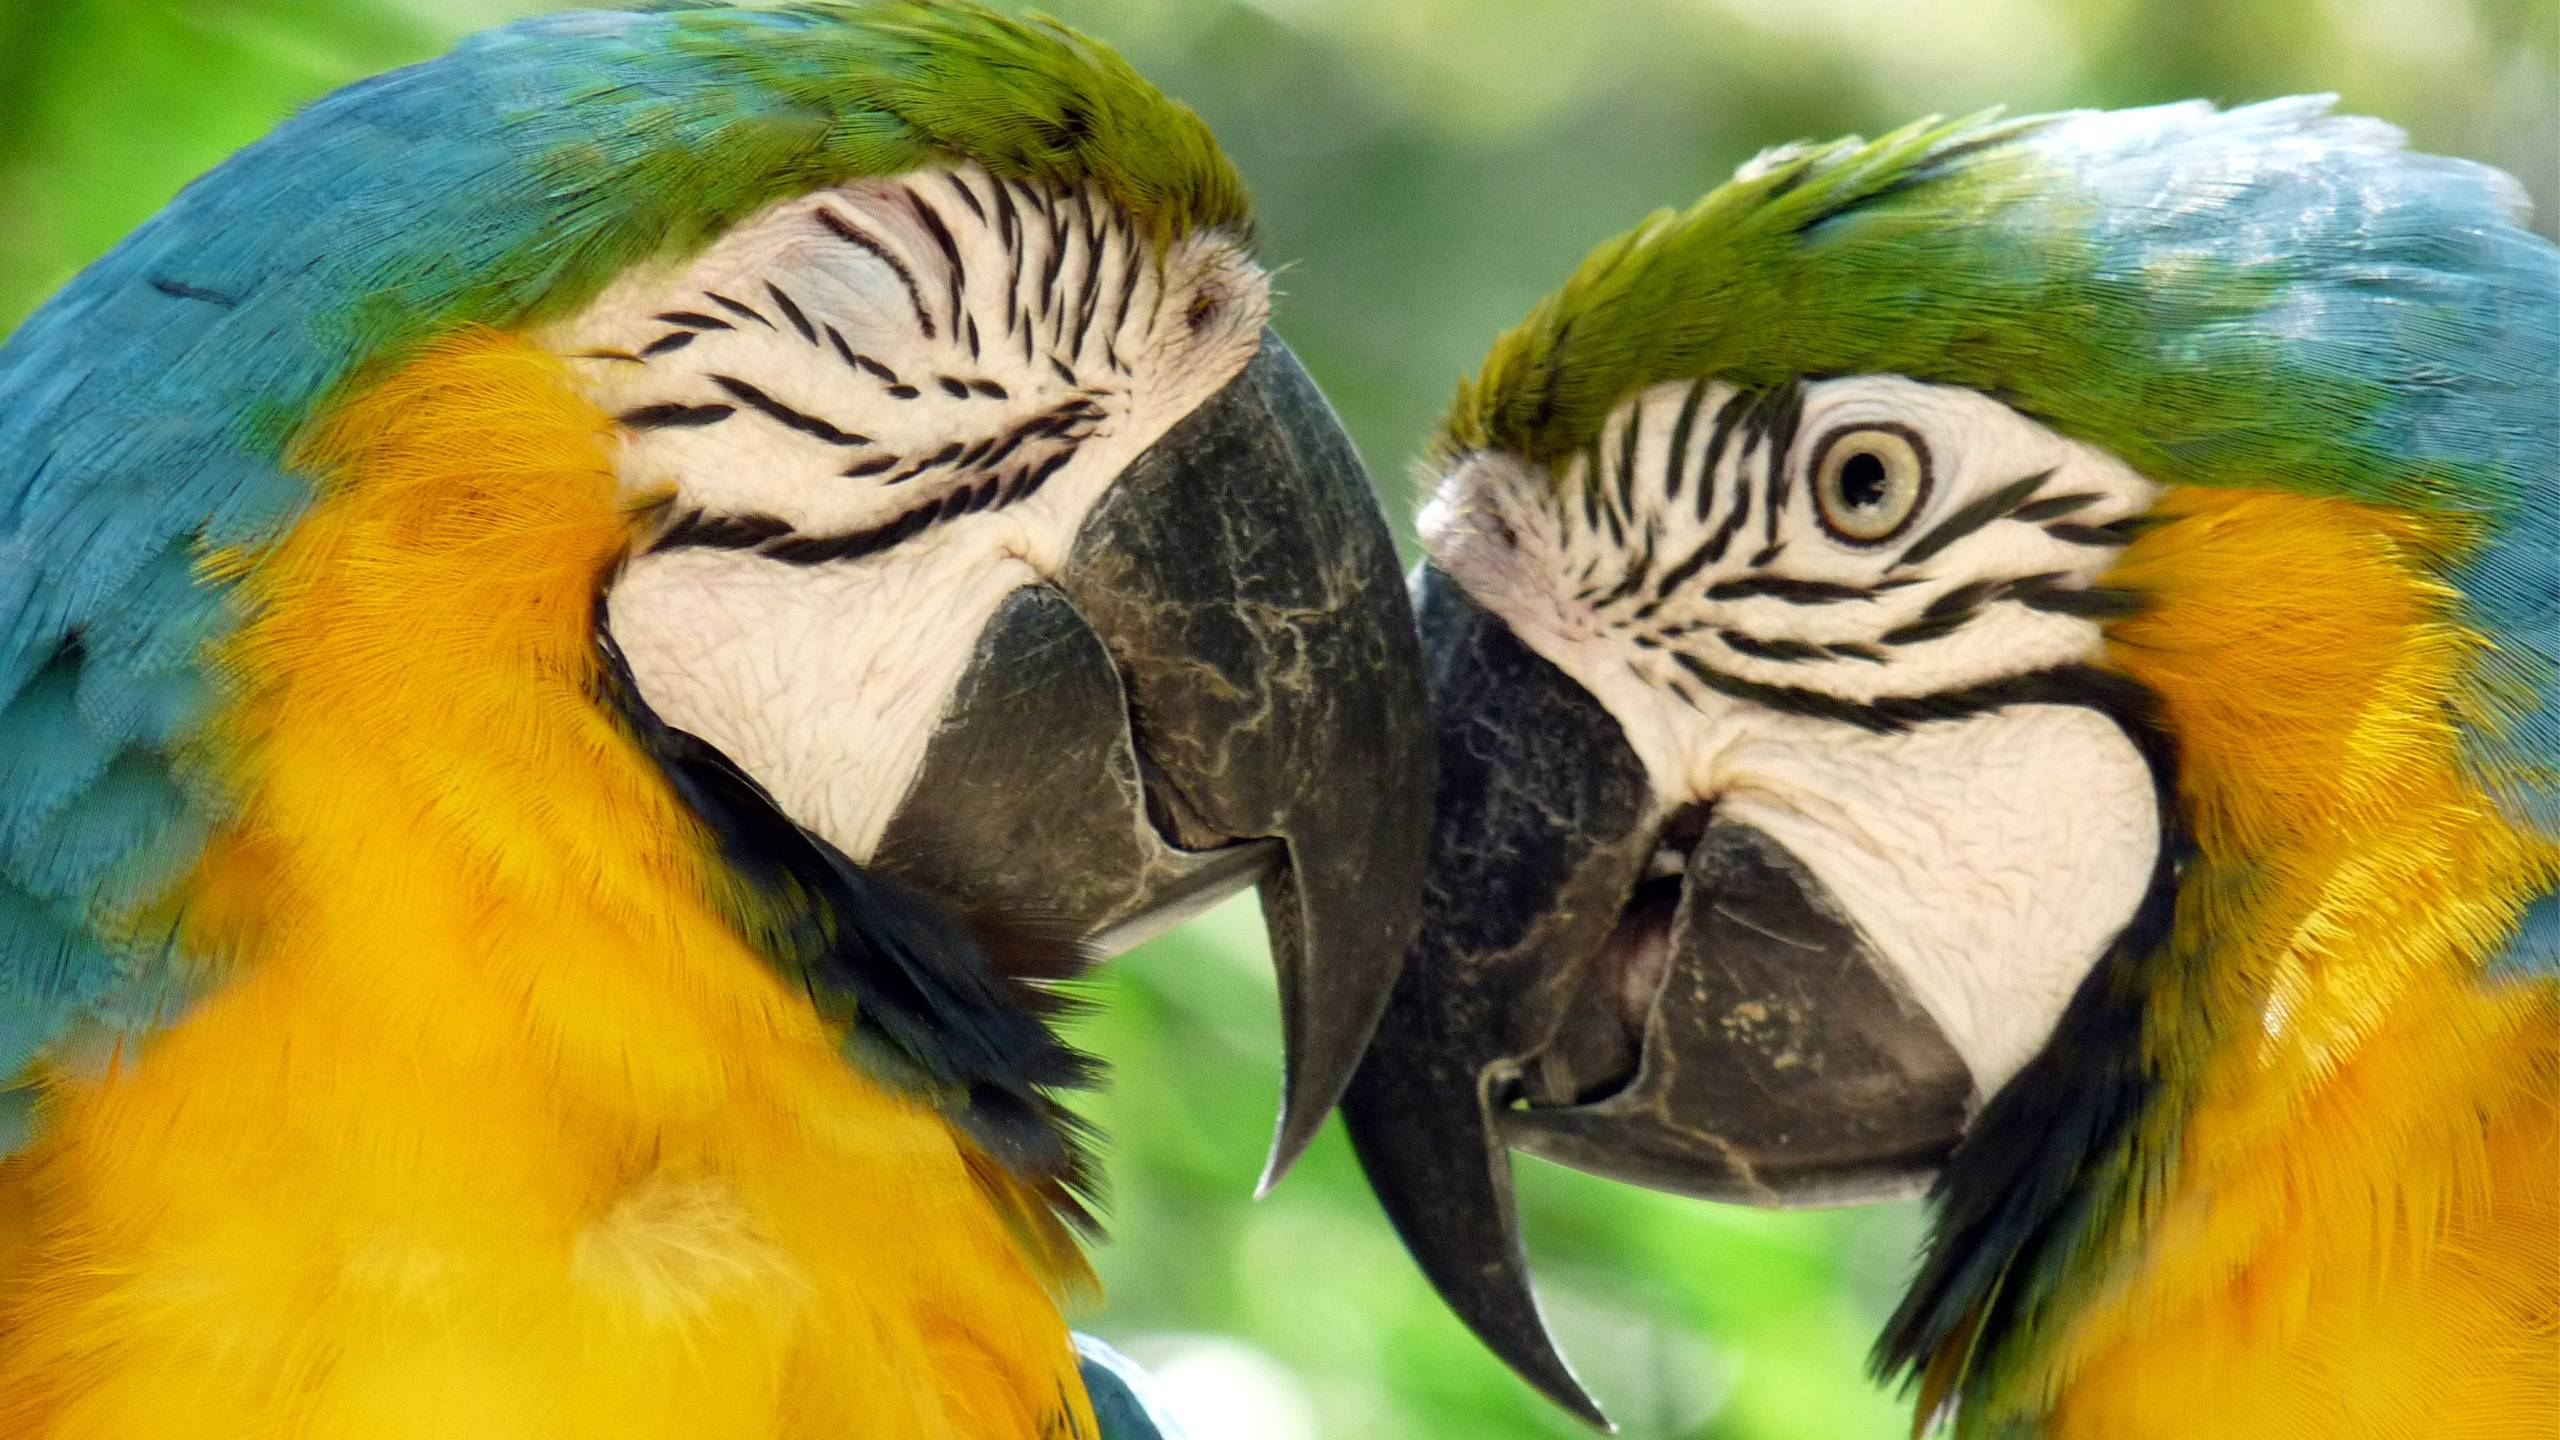 Breeding Macaw Parrots Wallpaper In 2560x1440 Resolution Free ...